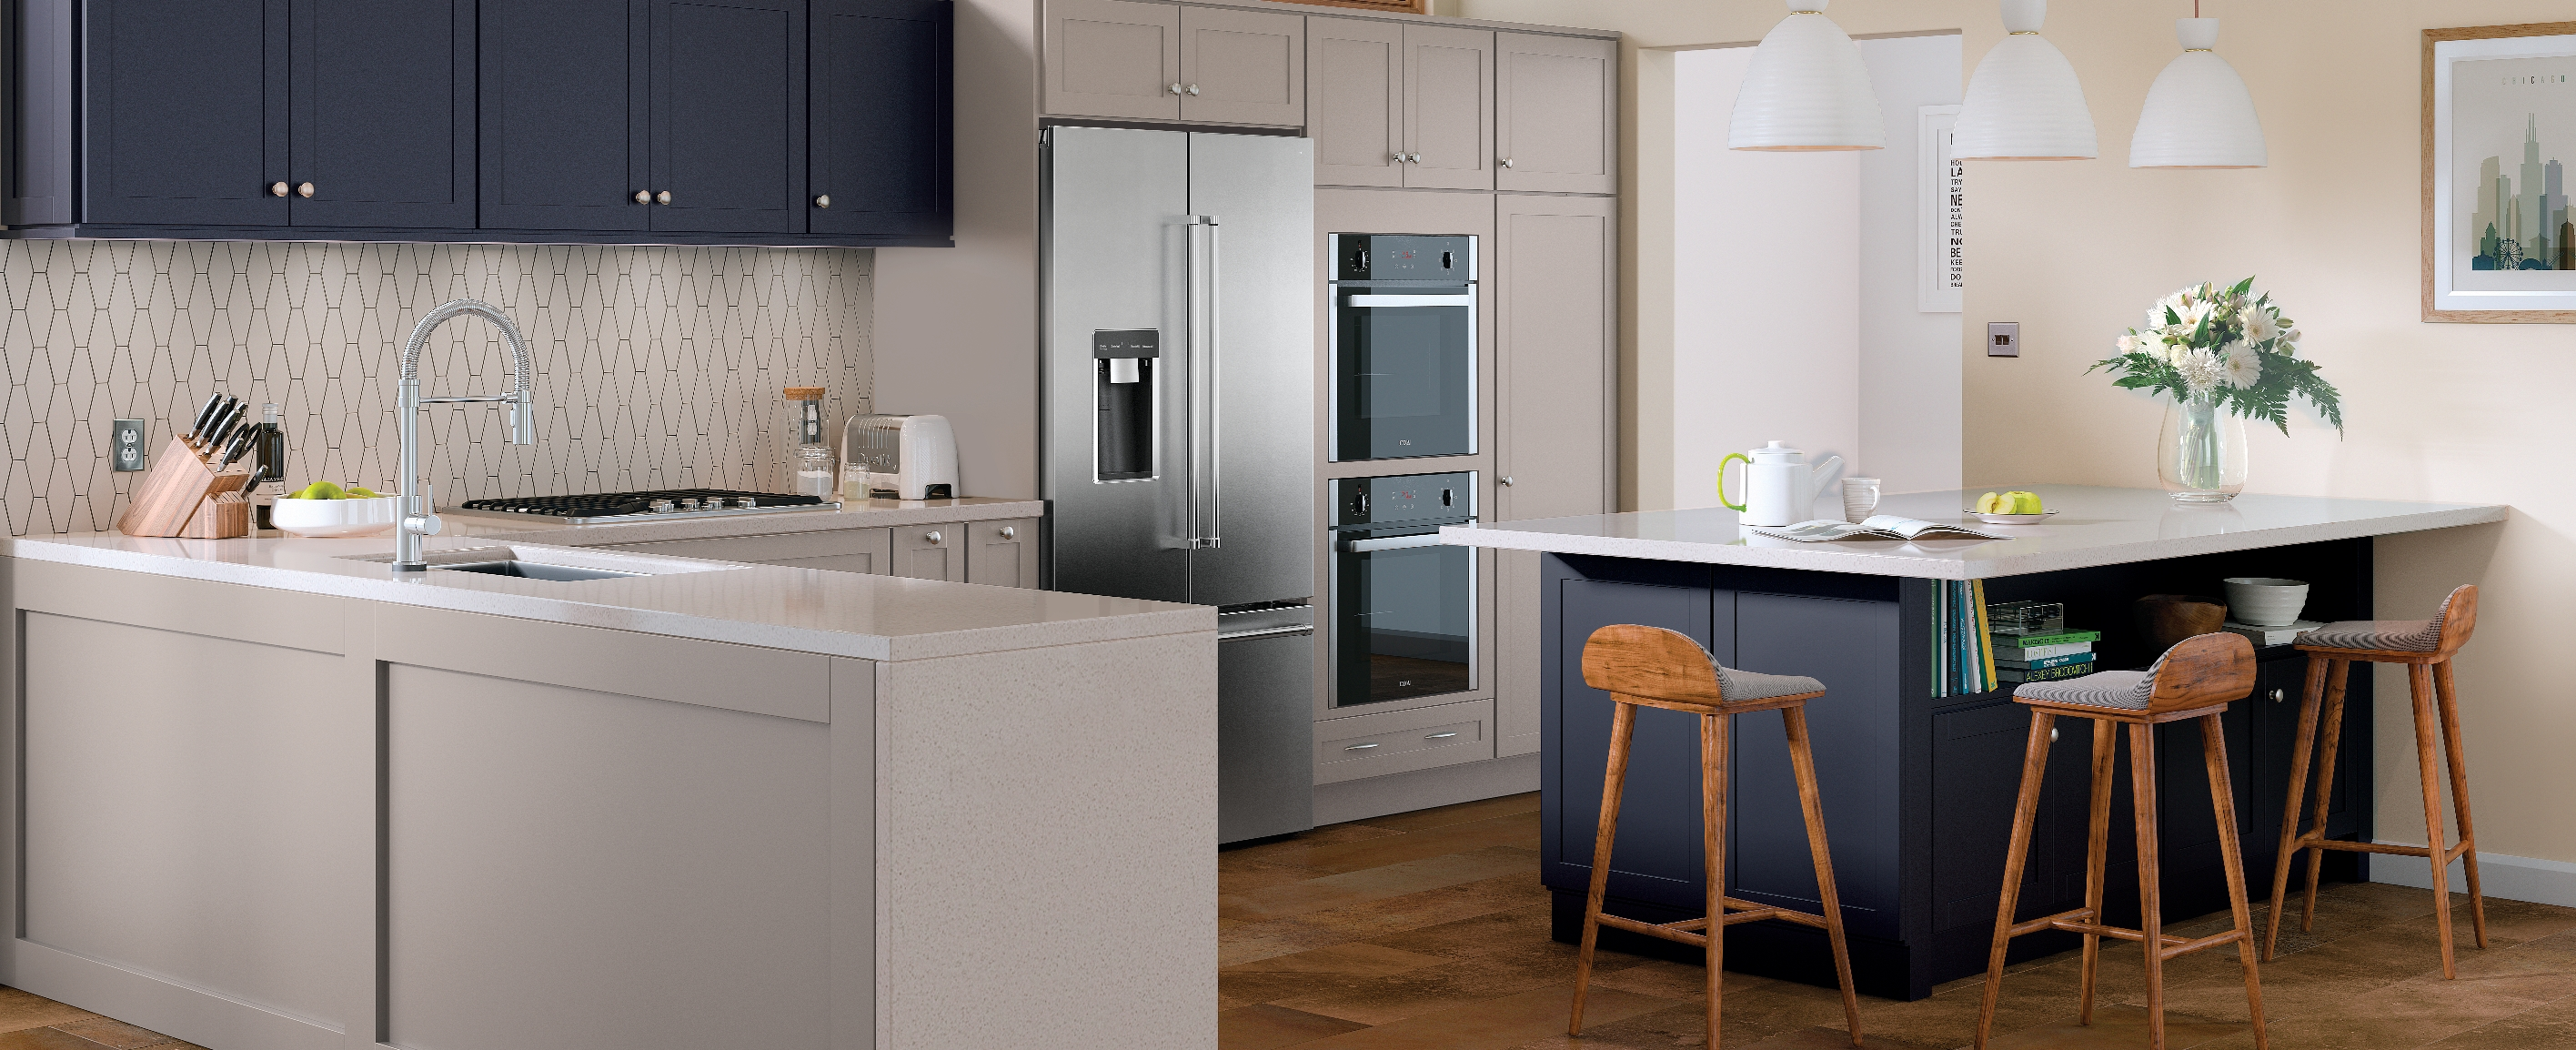 whats new in cabinetry at merillat classic